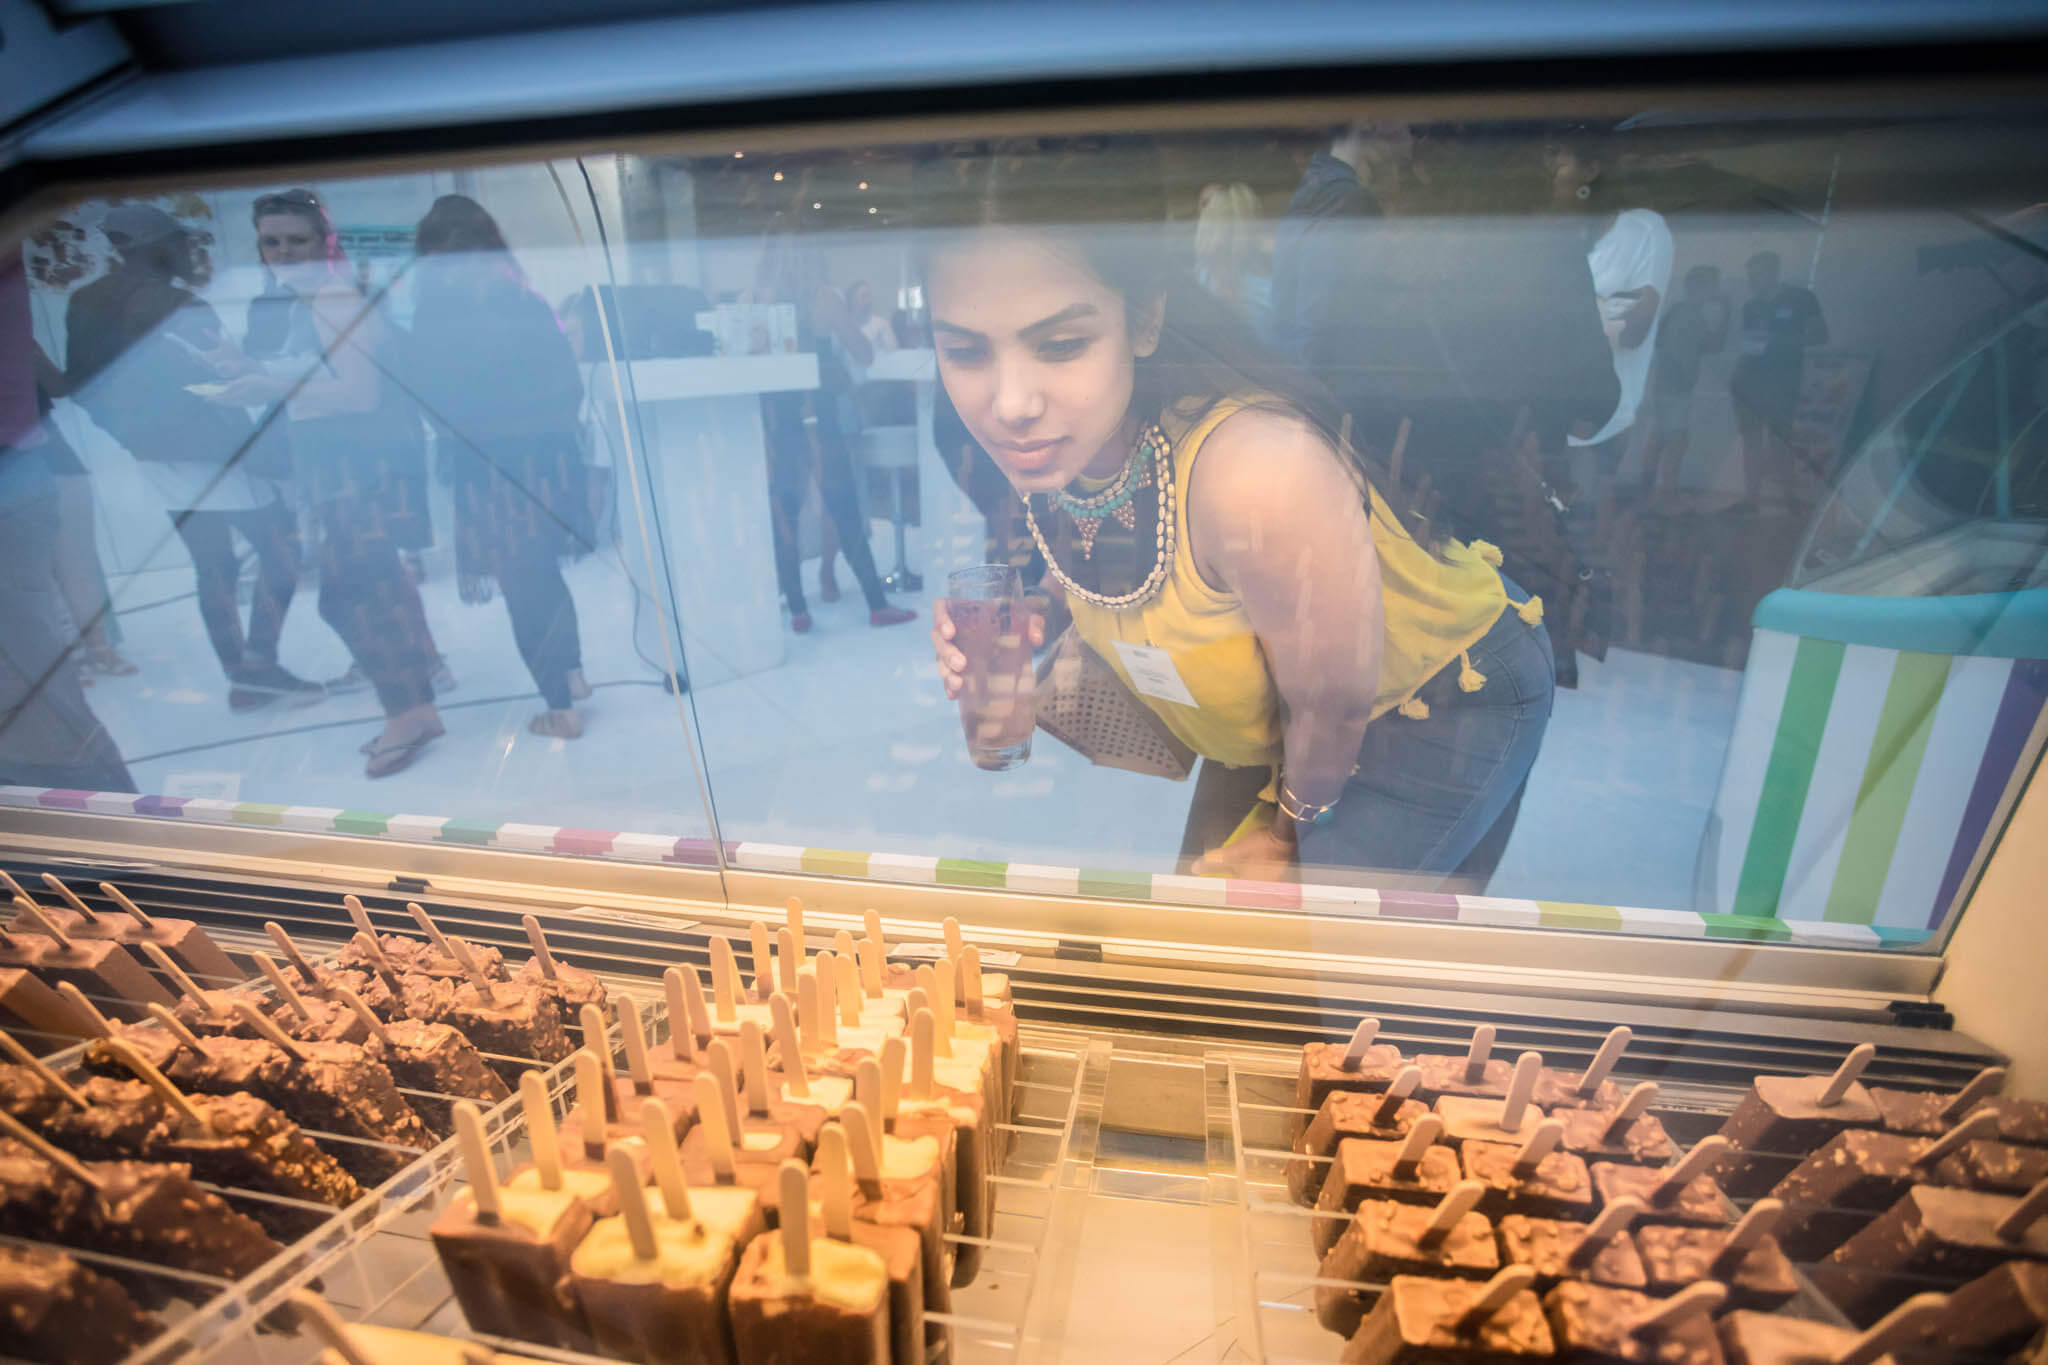 Young lady looking at Ice Cream through the display glass